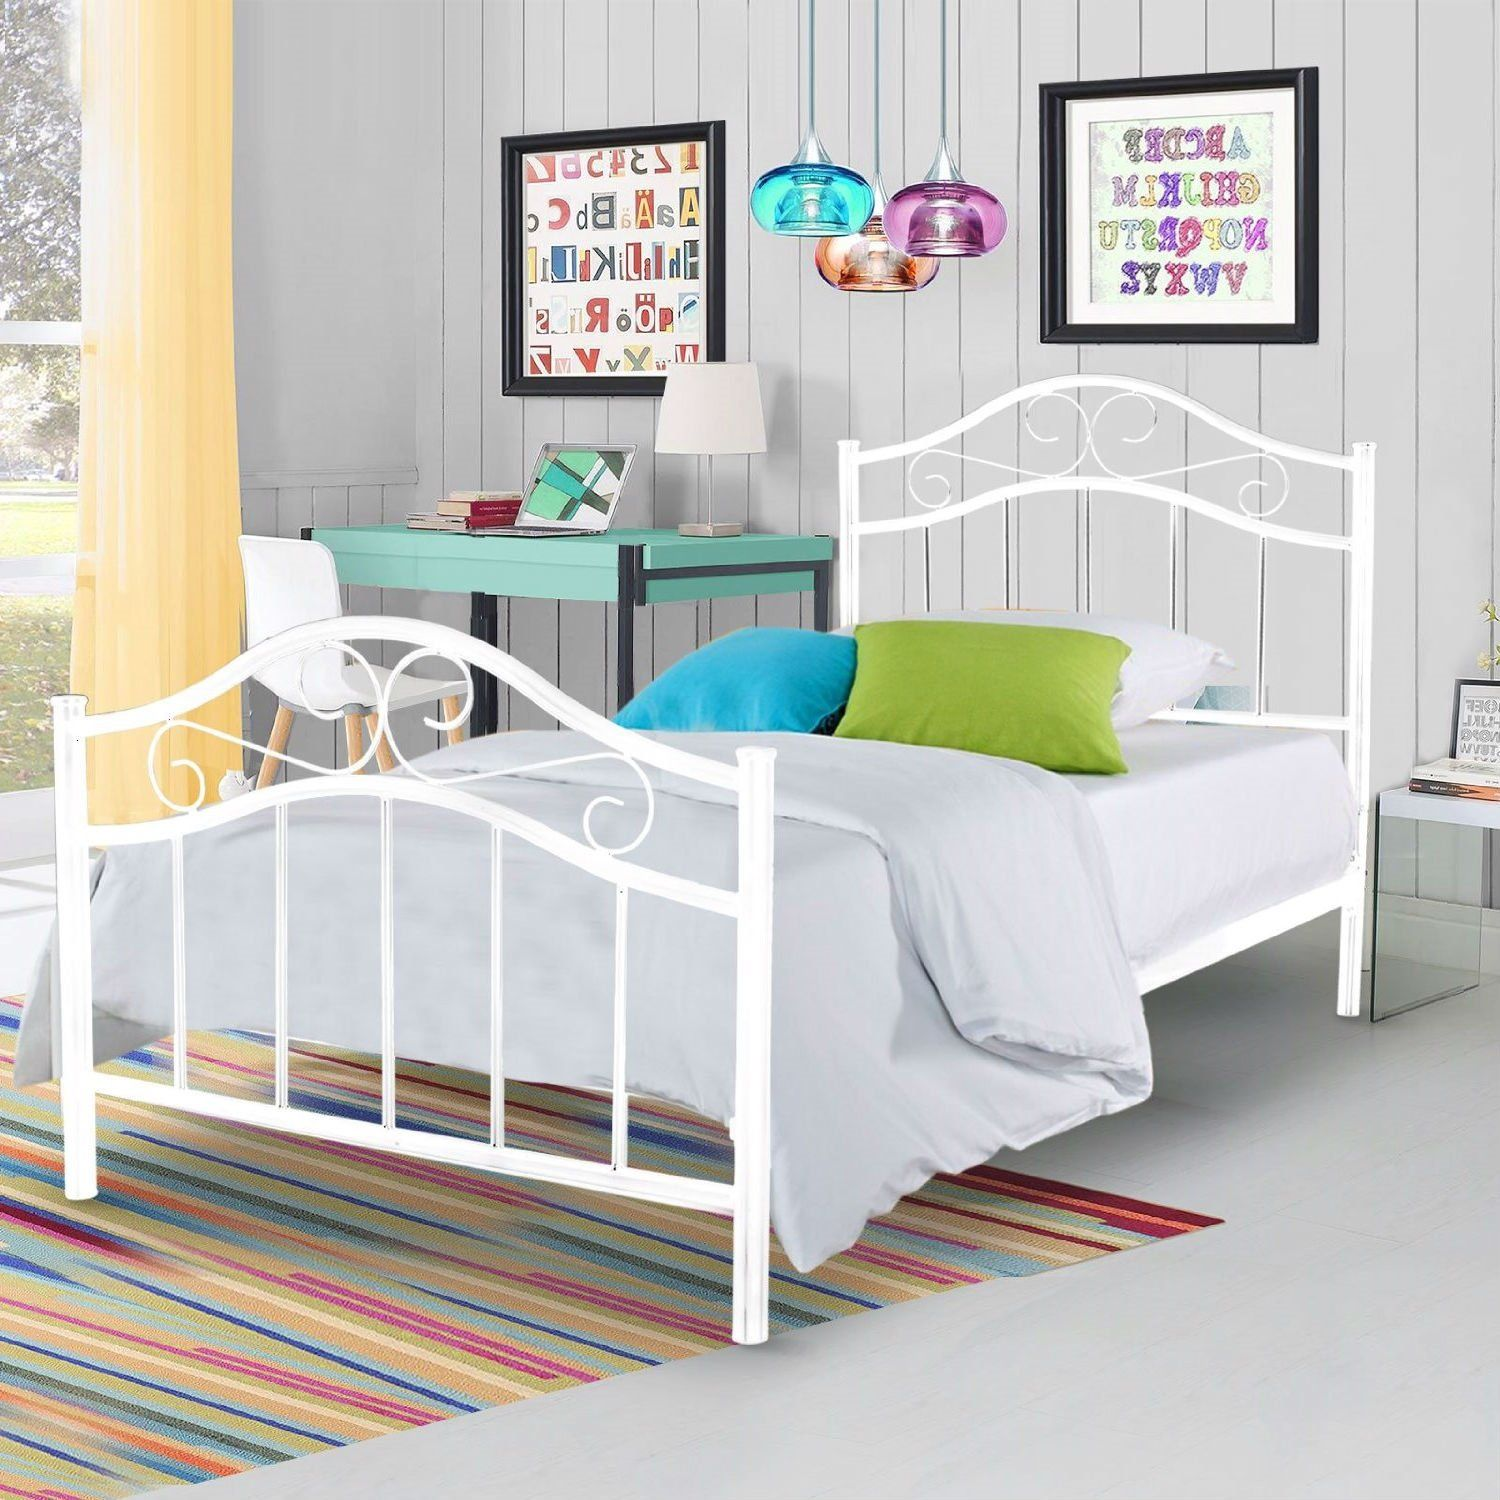 Twin size Metal Platform Bed Frame with Headboard and